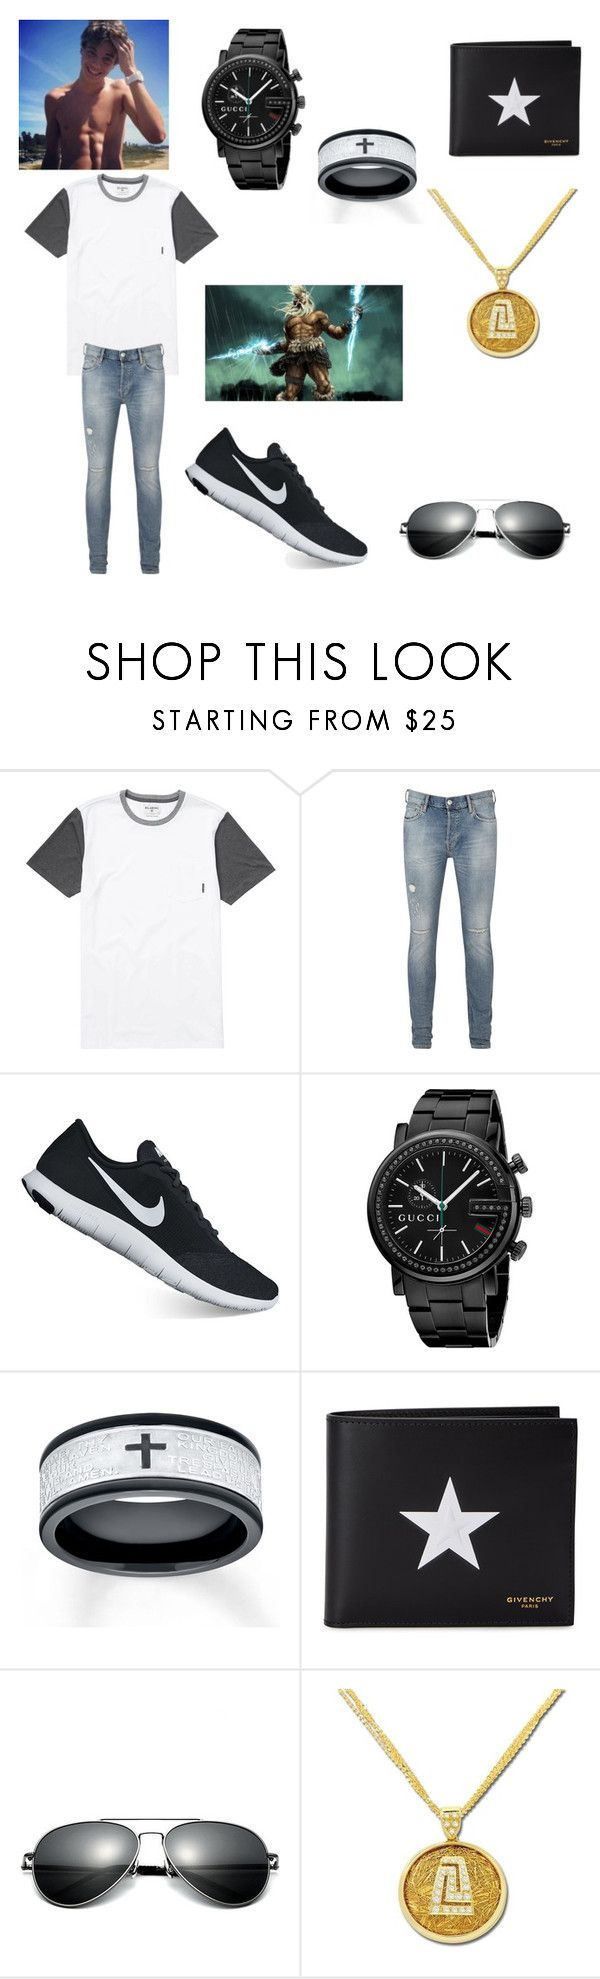 """Ryder, Zeus's son"" by pizzaqueen188 ❤ liked on Polyvore featuring Billabong, AllSaints, NIKE, Gucci, Givenchy, Anastazio, men's fashion and menswear"